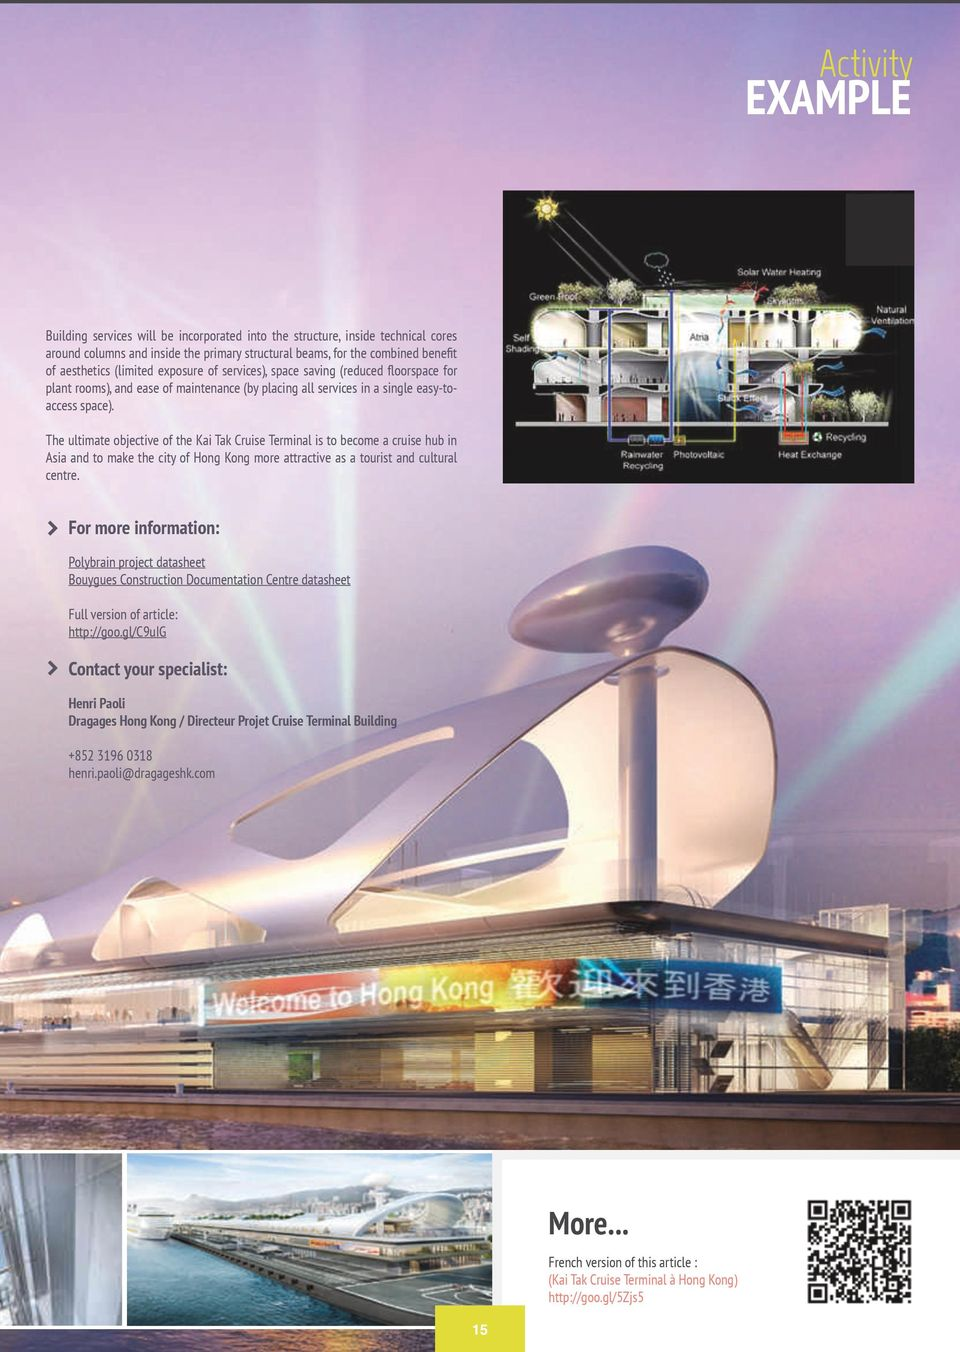 The ultimate objective of the Kai Tak Cruise Terminal is to become a cruise hub in Asia and to make the city of Hong Kong more attractive as a tourist and cultural centre.